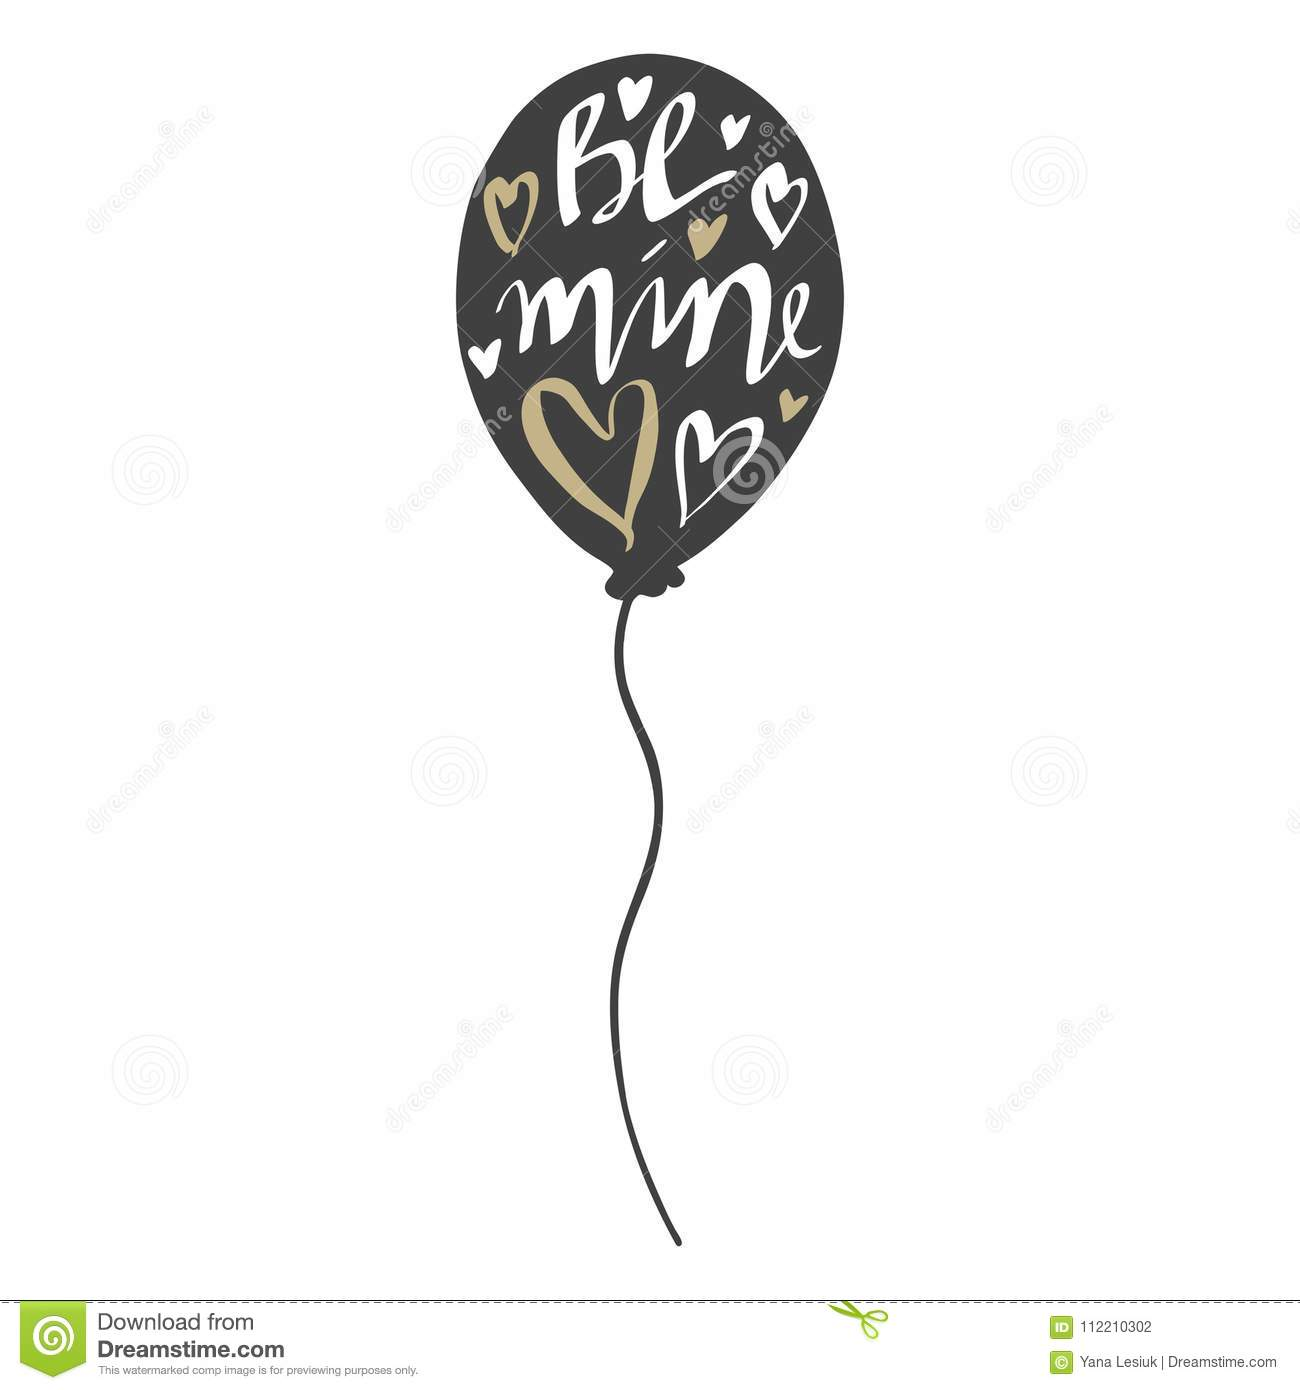 Vector greeting cards on valentines day with balloons be mine for vector greeting cards on valentines day with balloons doodle illustrations cute design hand drawn art inspirational lettering be mine for lovers m4hsunfo